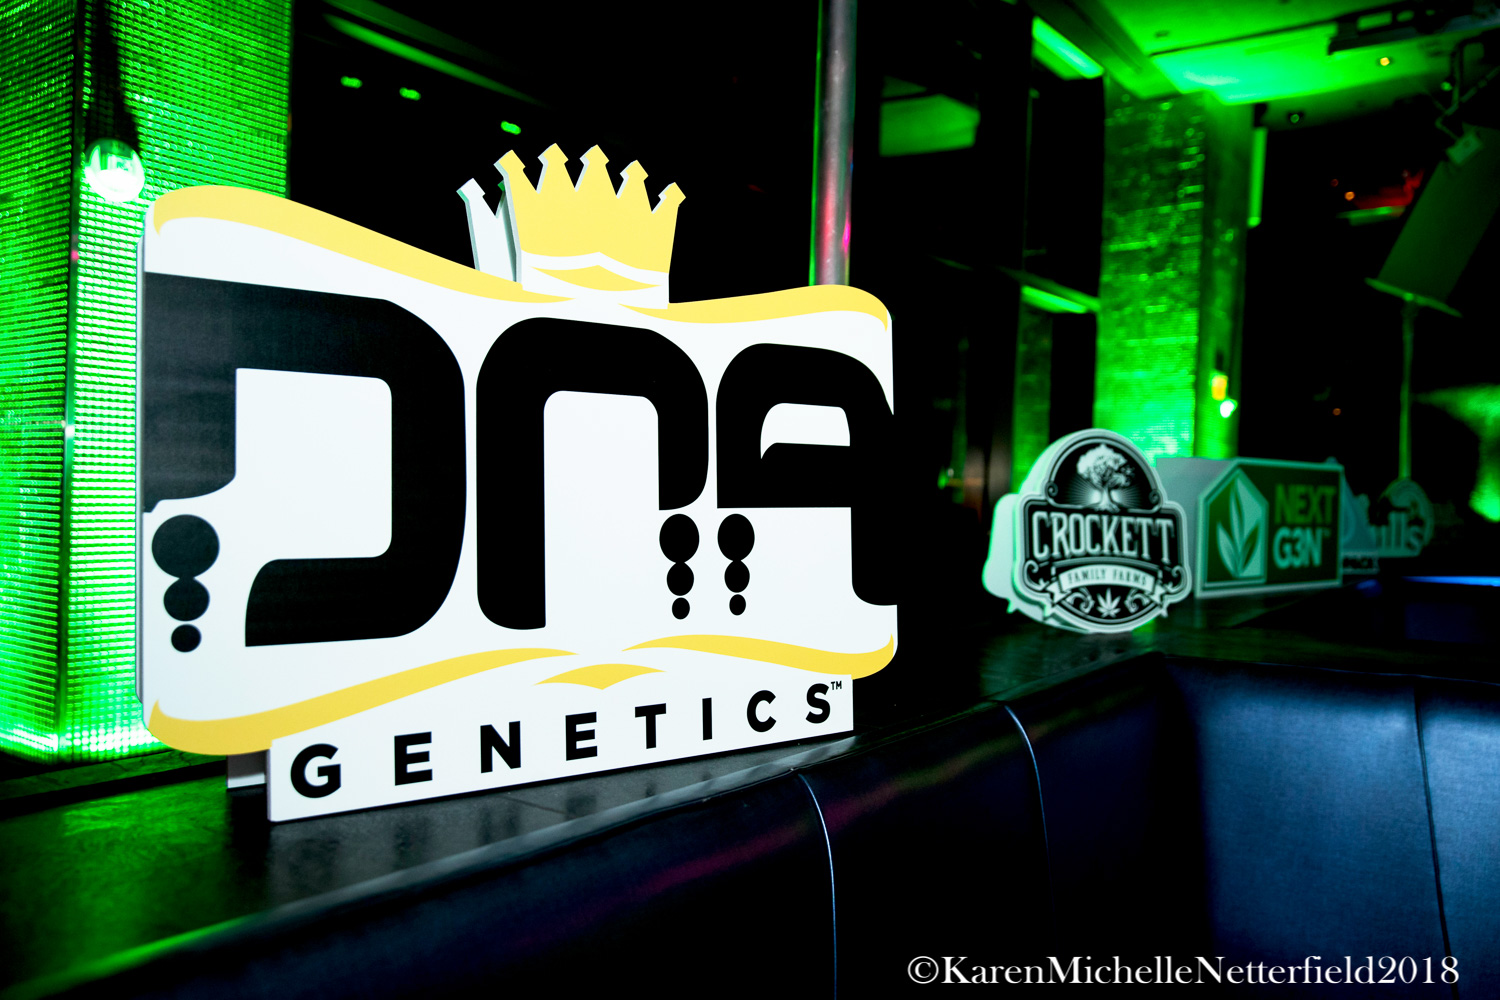 Promo_Photography_DNA_Cannabis_Group©KarenMichelleNetterfield2018.jpg